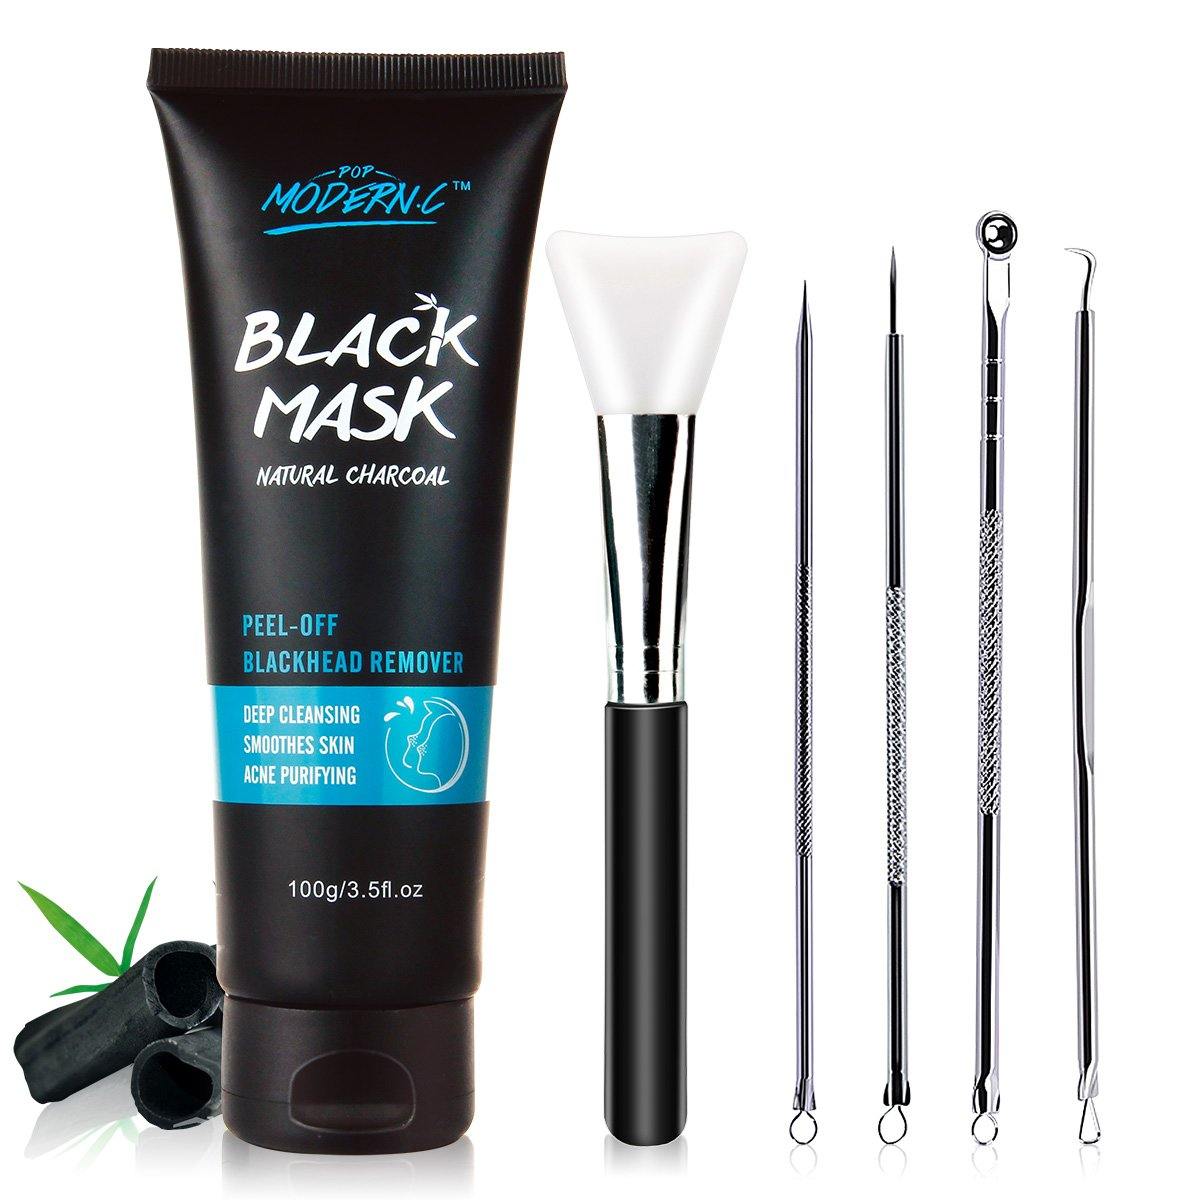 Black Mask-Blackhead Removal Mask Peel Off Facial Black Mask 3.5 oz(100 G) Pore Control, Skin Cleansing, Purifying Bamboo Charcoal With Blackhead Remover Extractor Tools Kit & Mask Brush POP MODERN.C